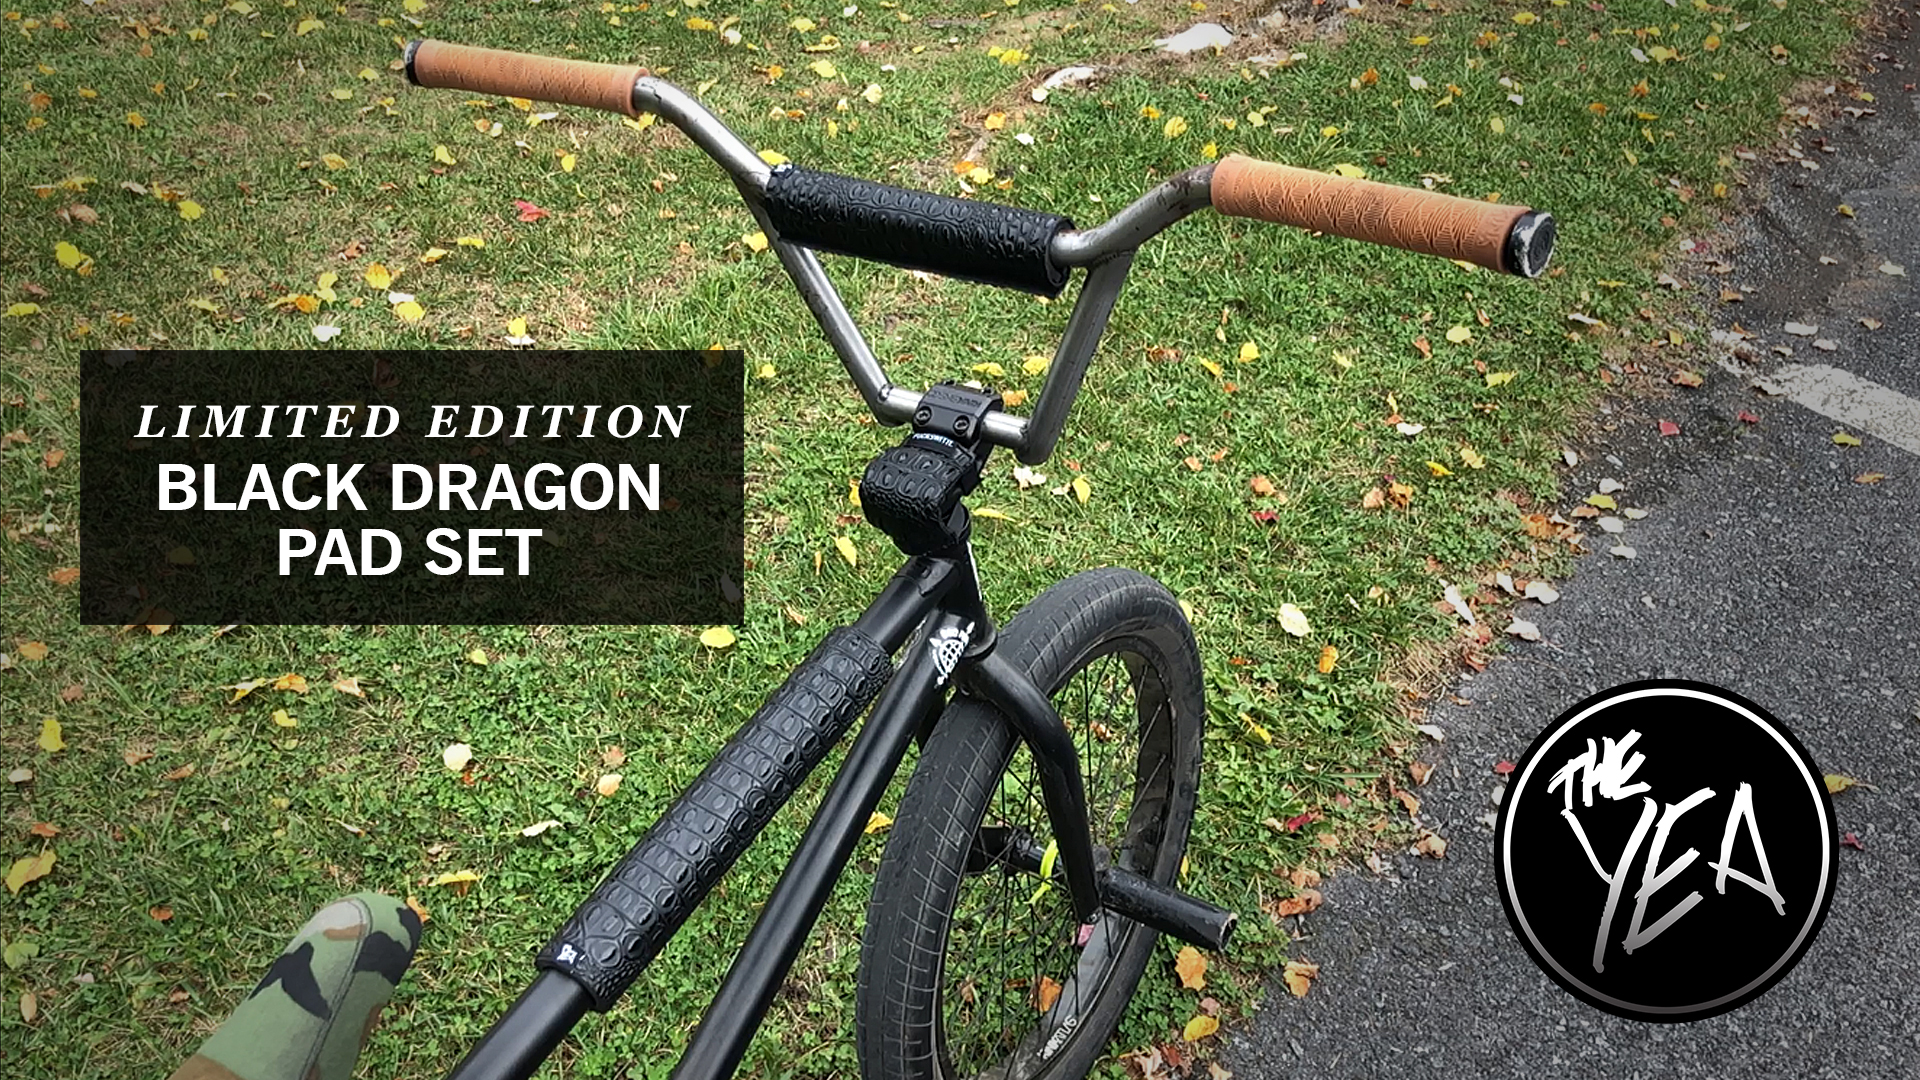 Black Dragon BMX Pad Sets